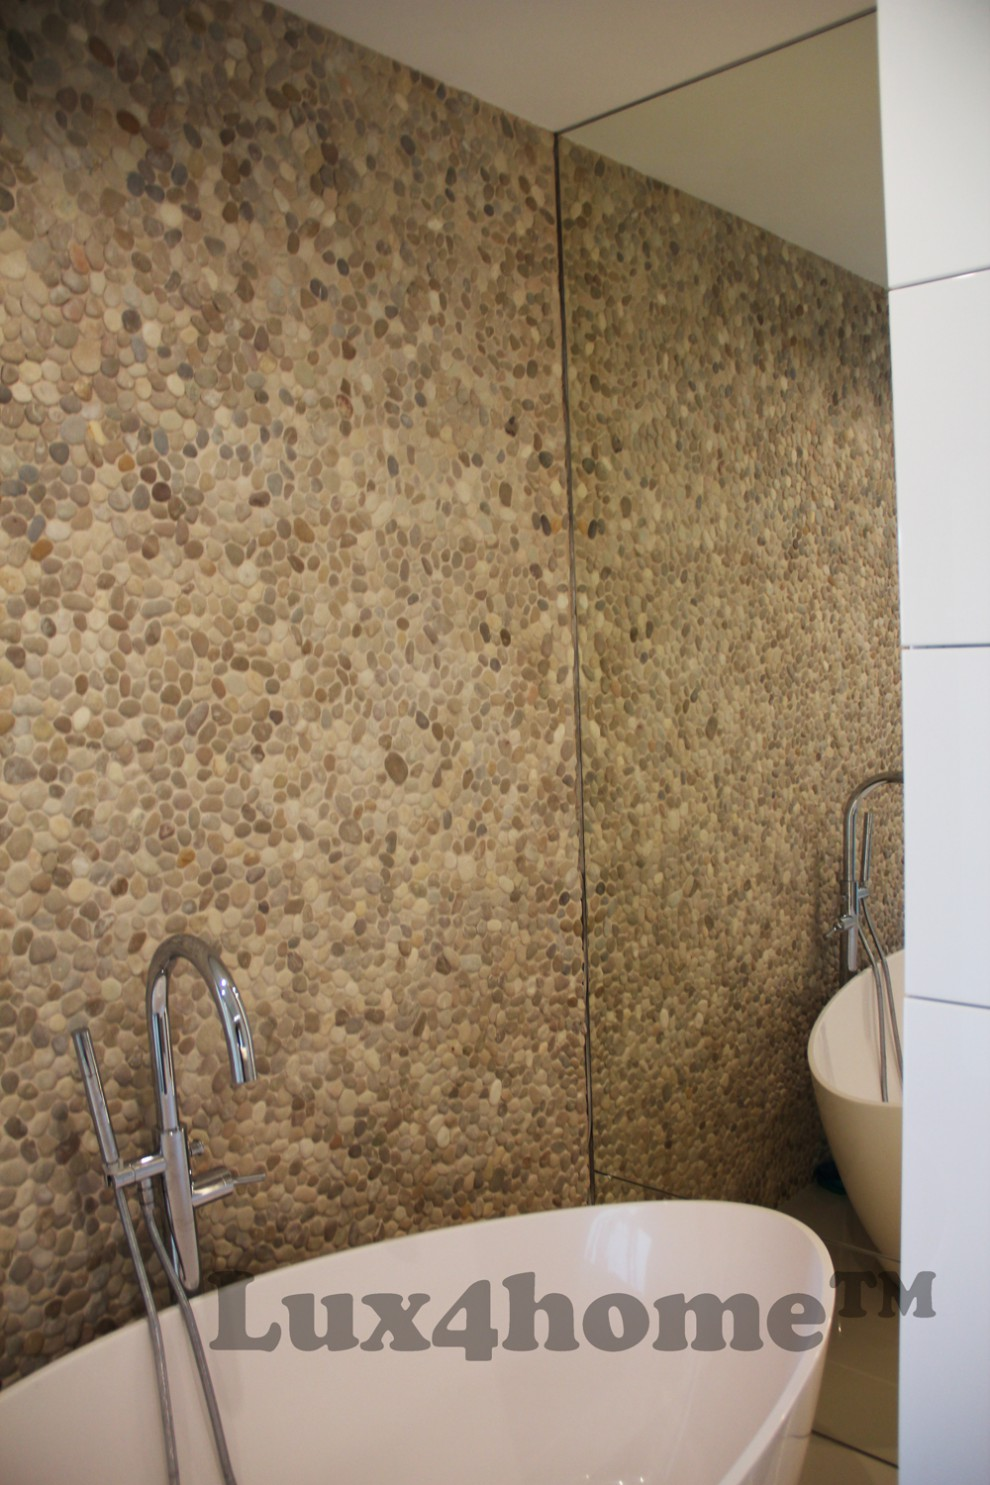 Pebble tiles Maluku Tan-Lux4home(2)